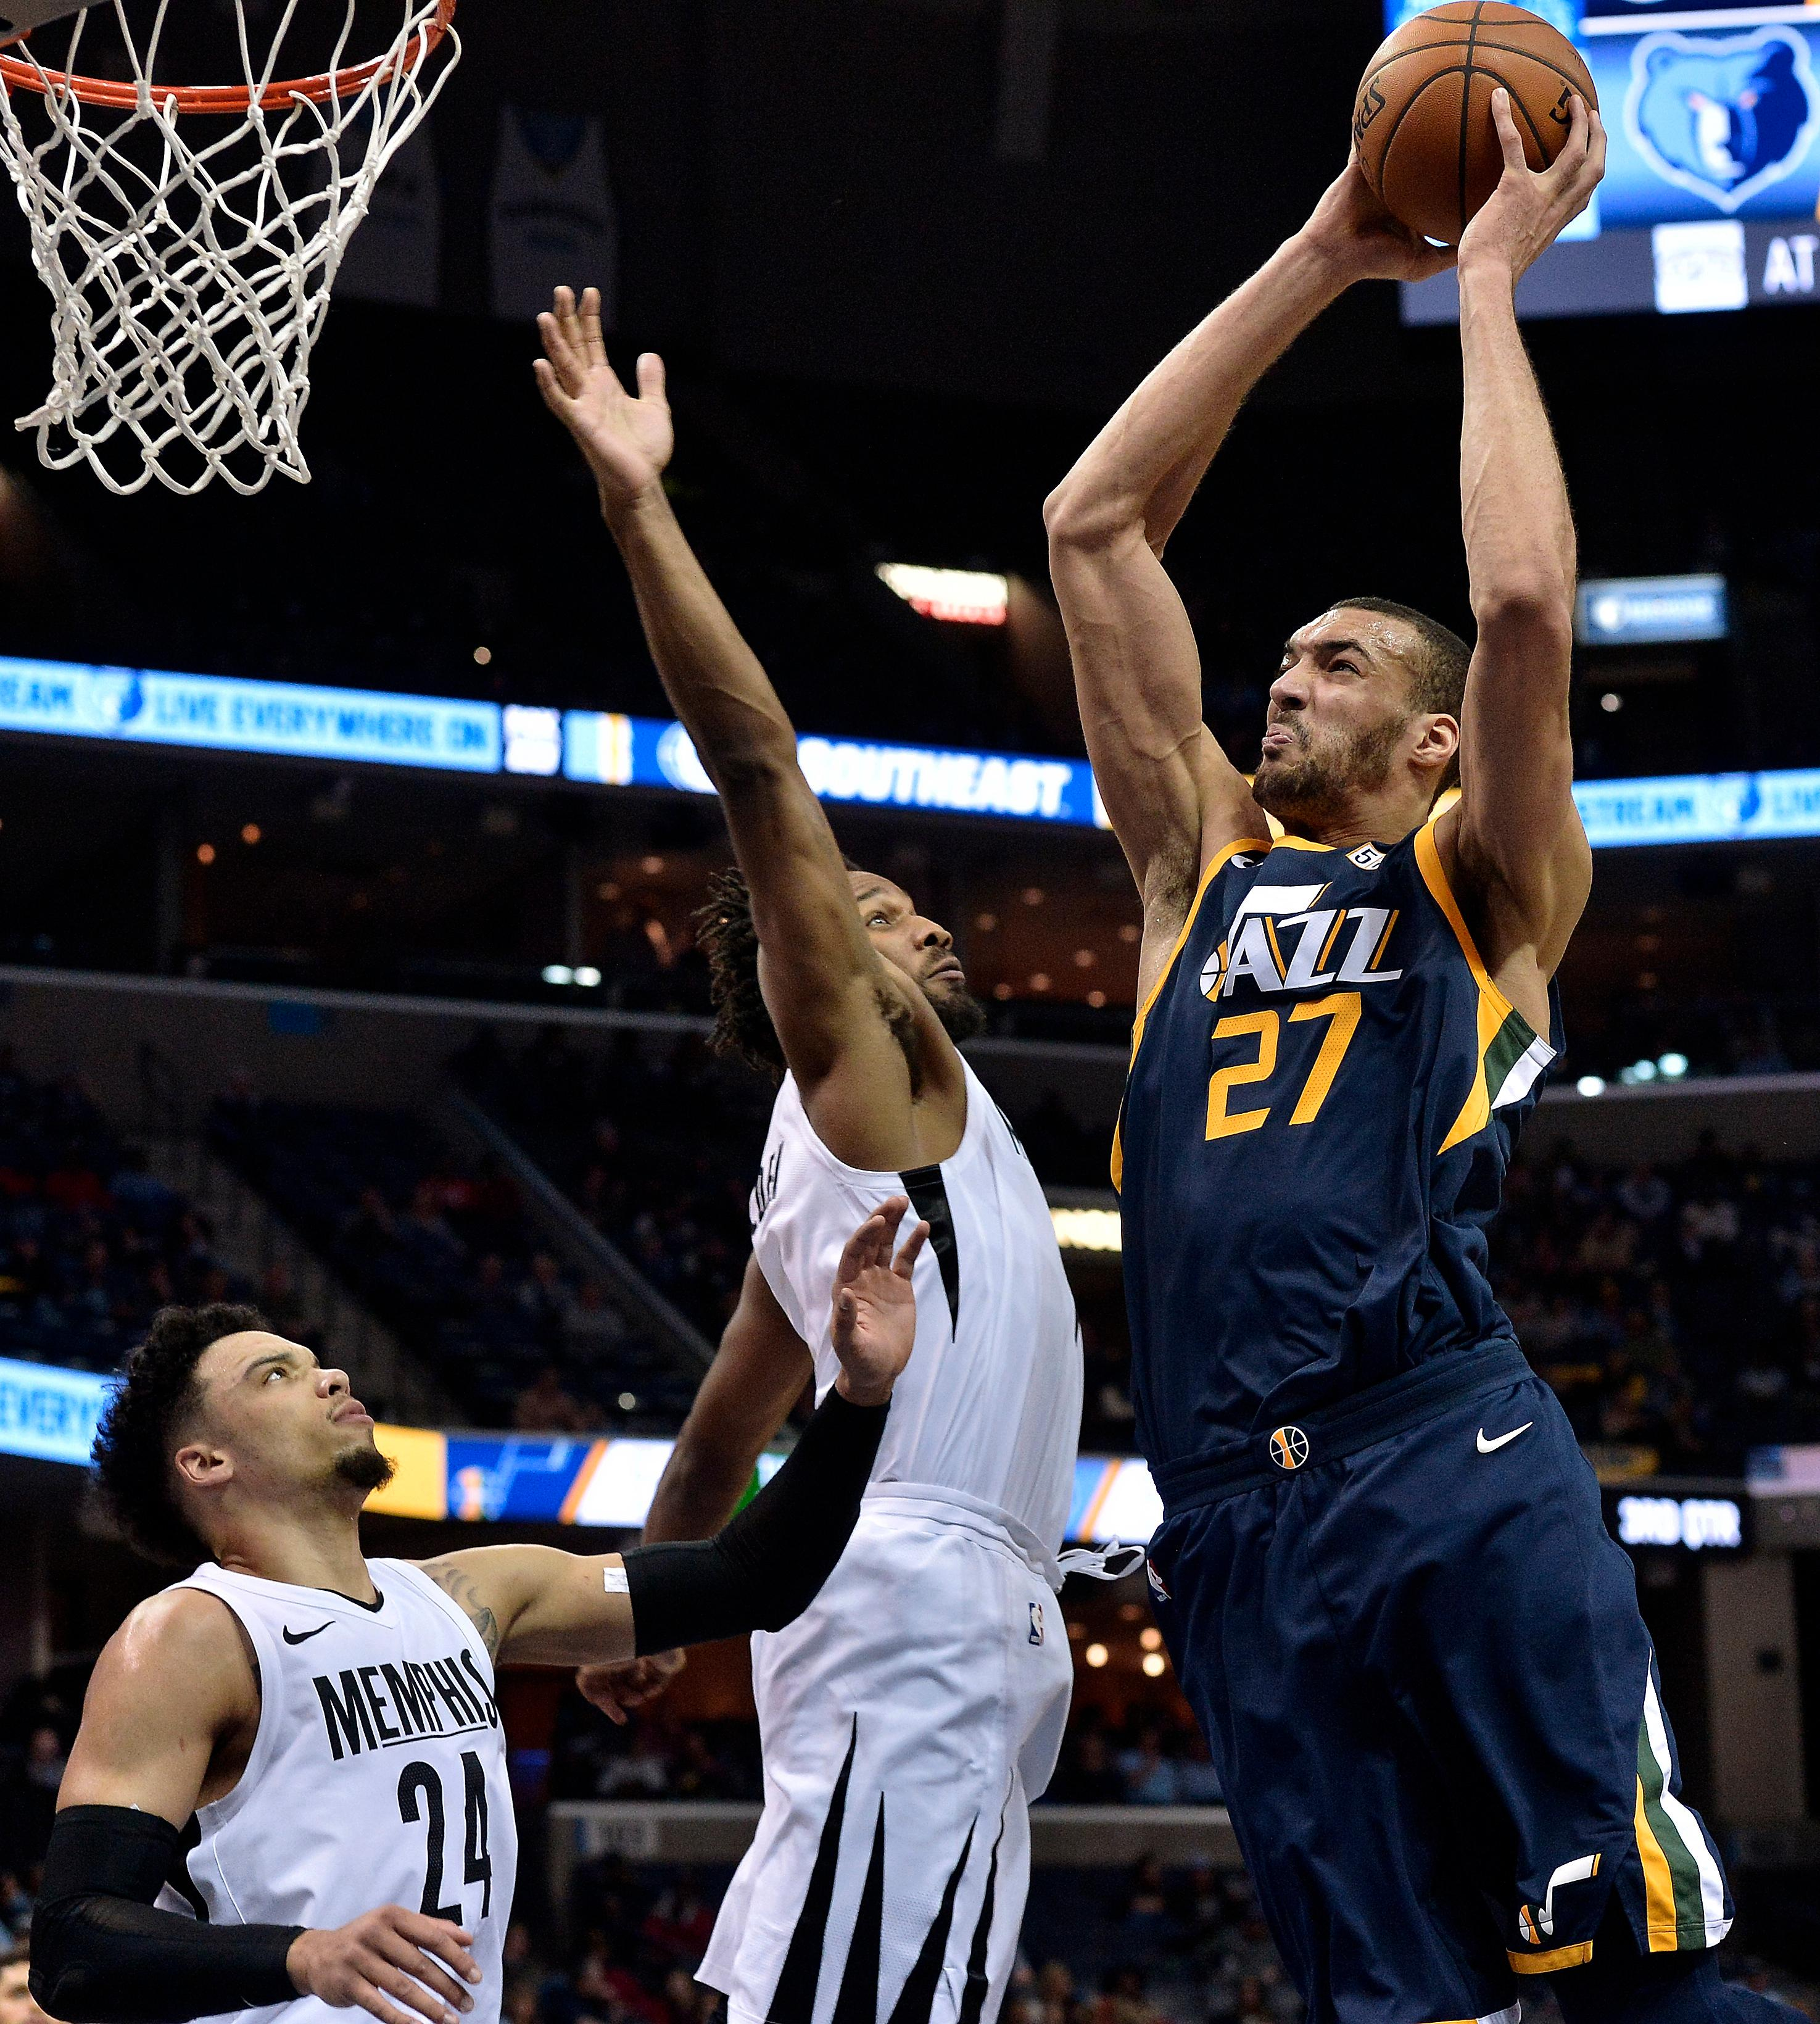 Utah Jazz center Rudy Gobert (27) goes up for a dunk against Memphis Grizzlies guard Wayne Selden, center, and forward Dillon Brooks (24) during the second half of an NBA basketball game Wednesday, Feb. 7, 2018, in Memphis, Tenn. (AP Photo/Brandon Dill)